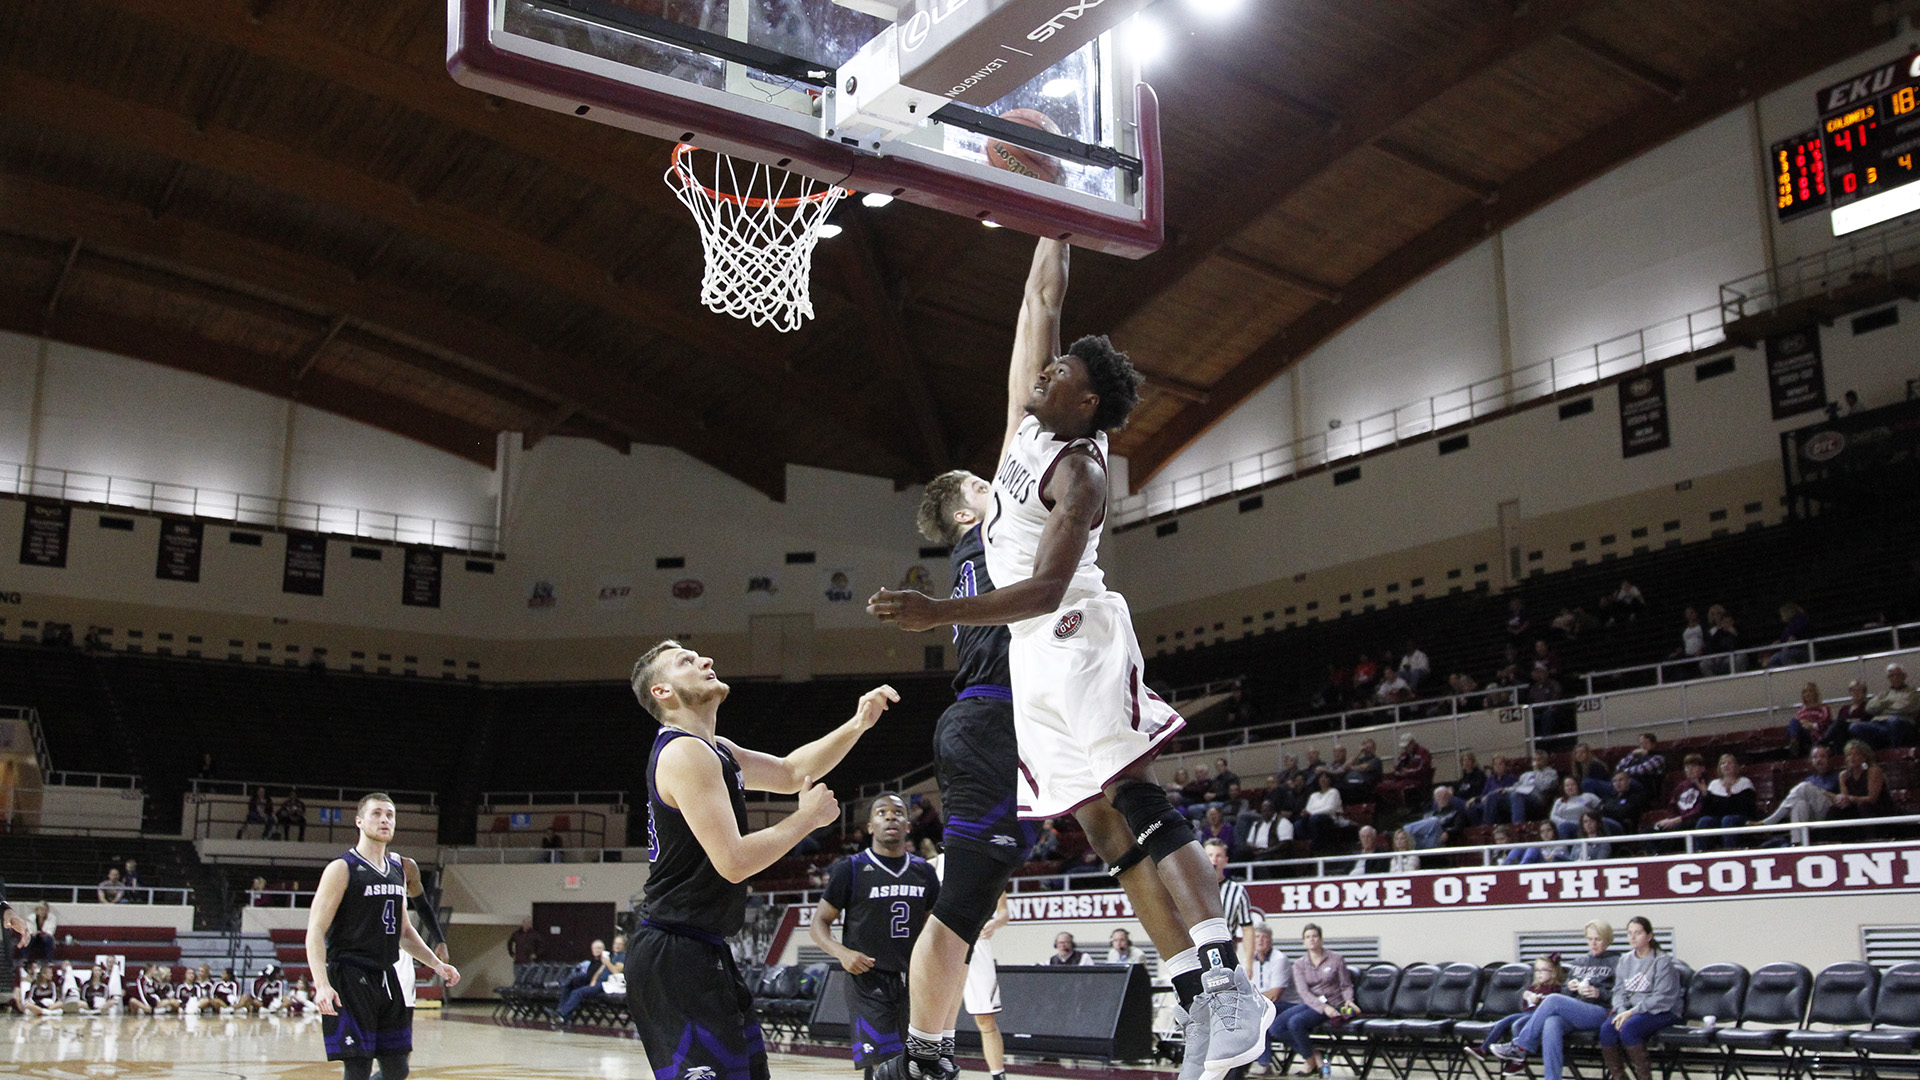 EKU Runs Away From Asbury in the Second Half, 99-71